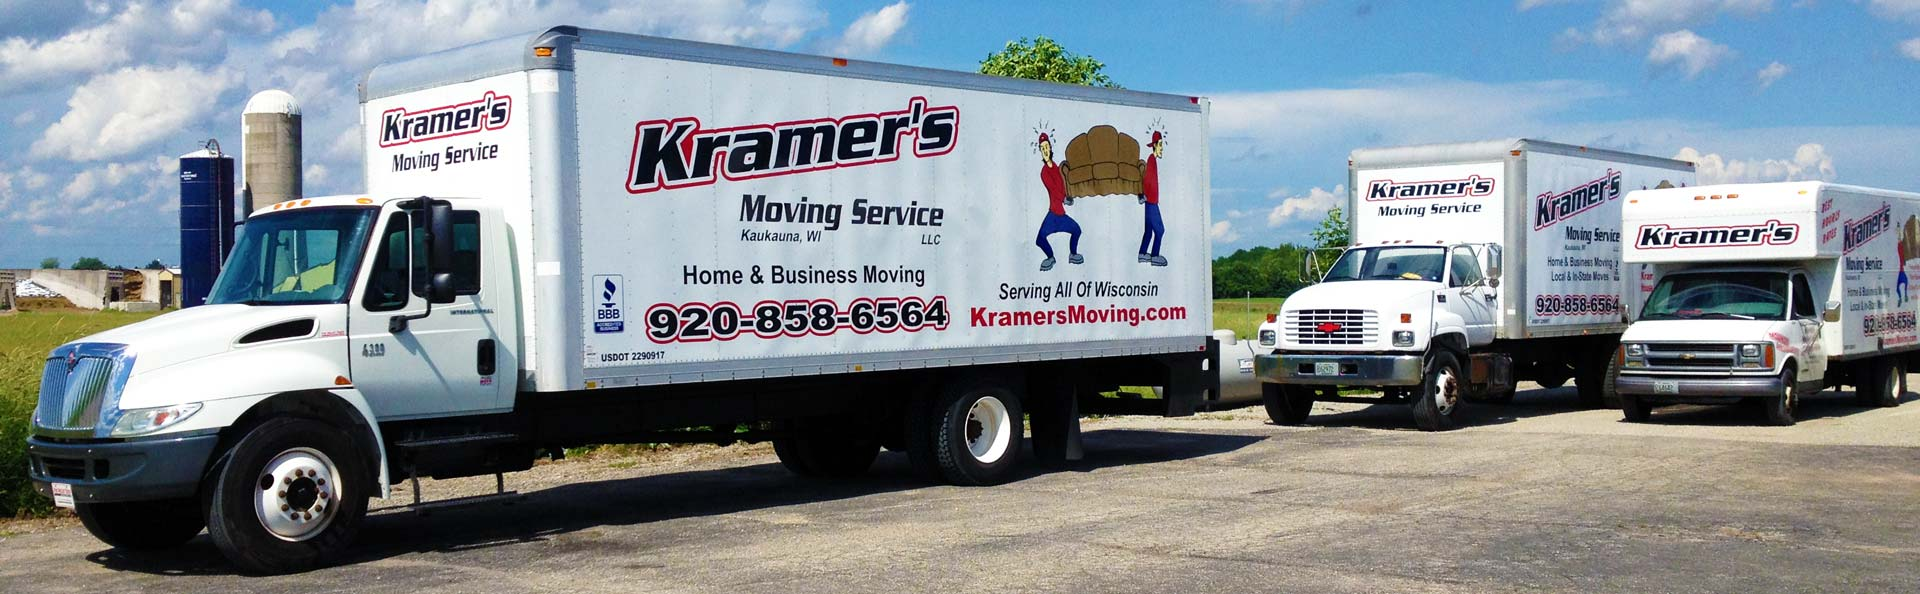 Kramers Moving Service